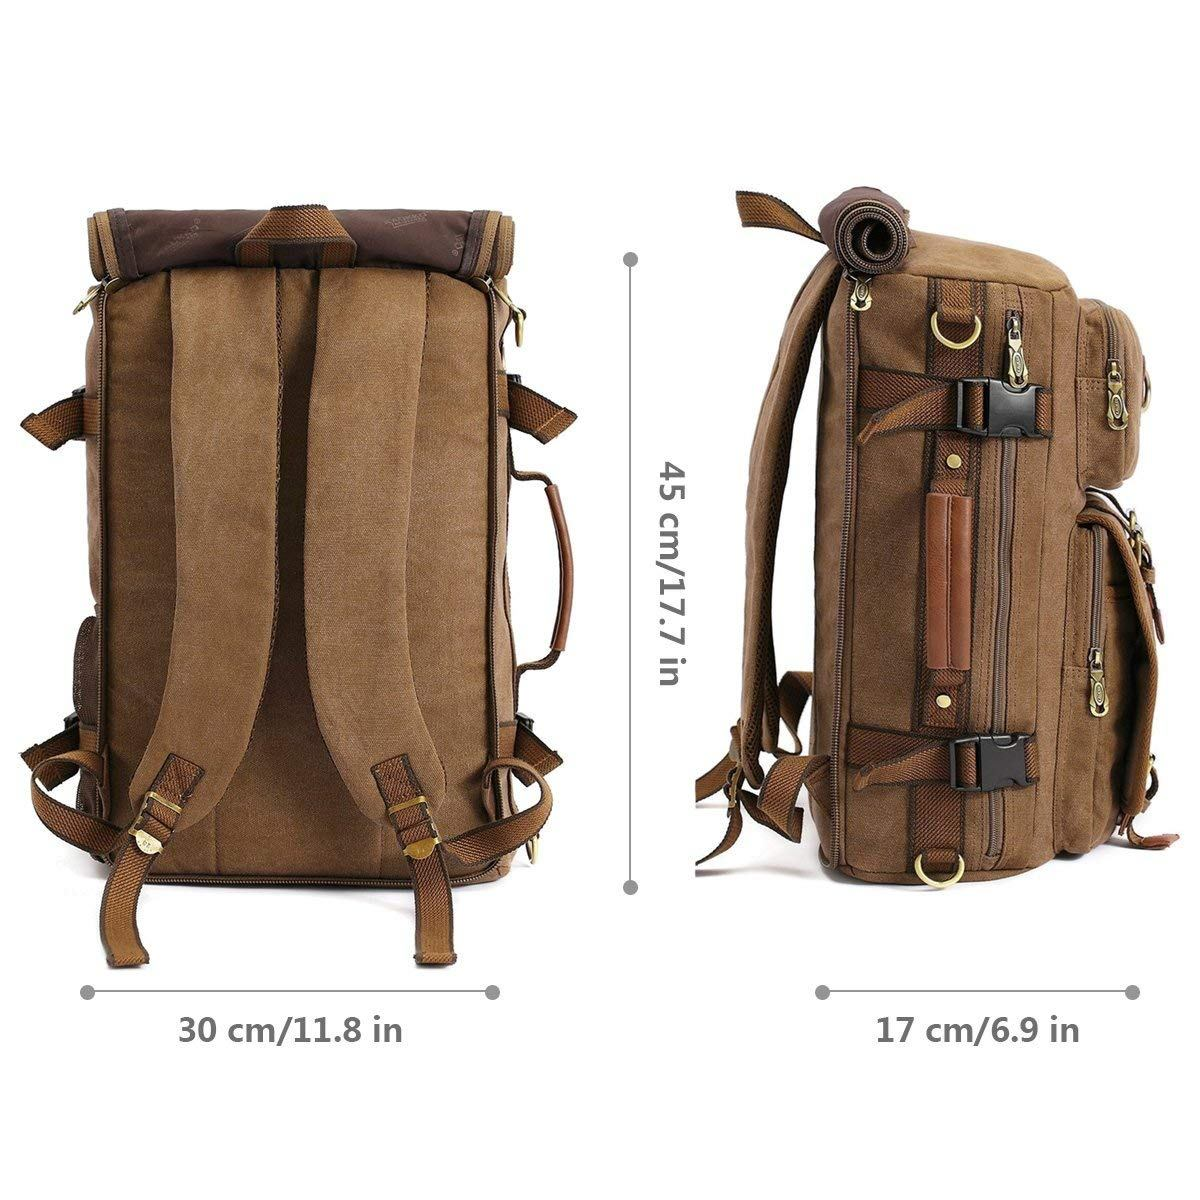 Ericdress Retro Canvas Leather Hiking Bag